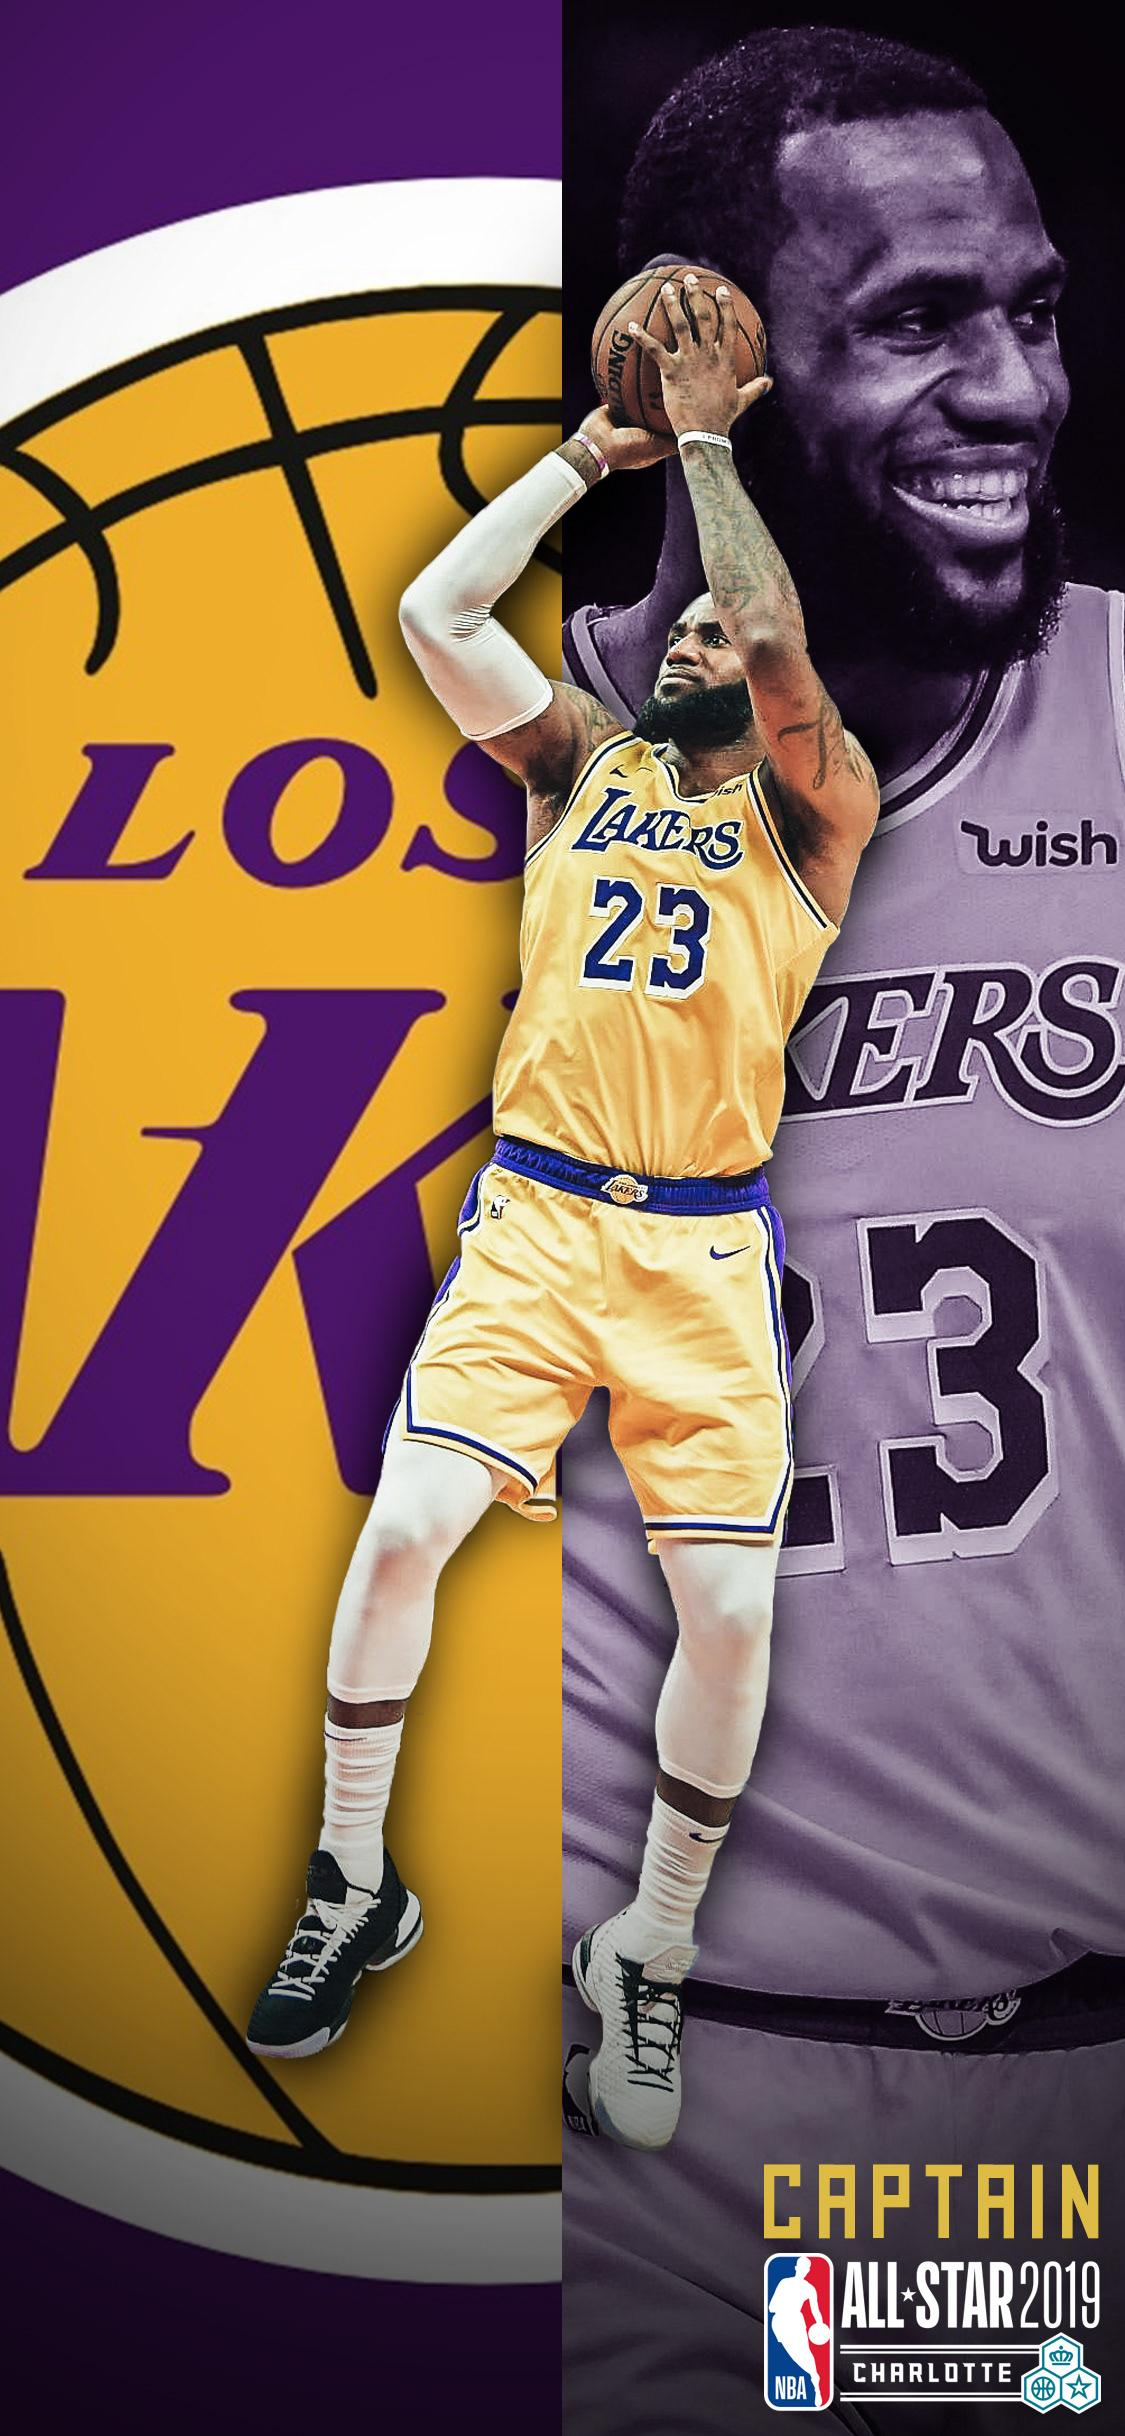 NBA All Star Wallpapers 2019 on Behance